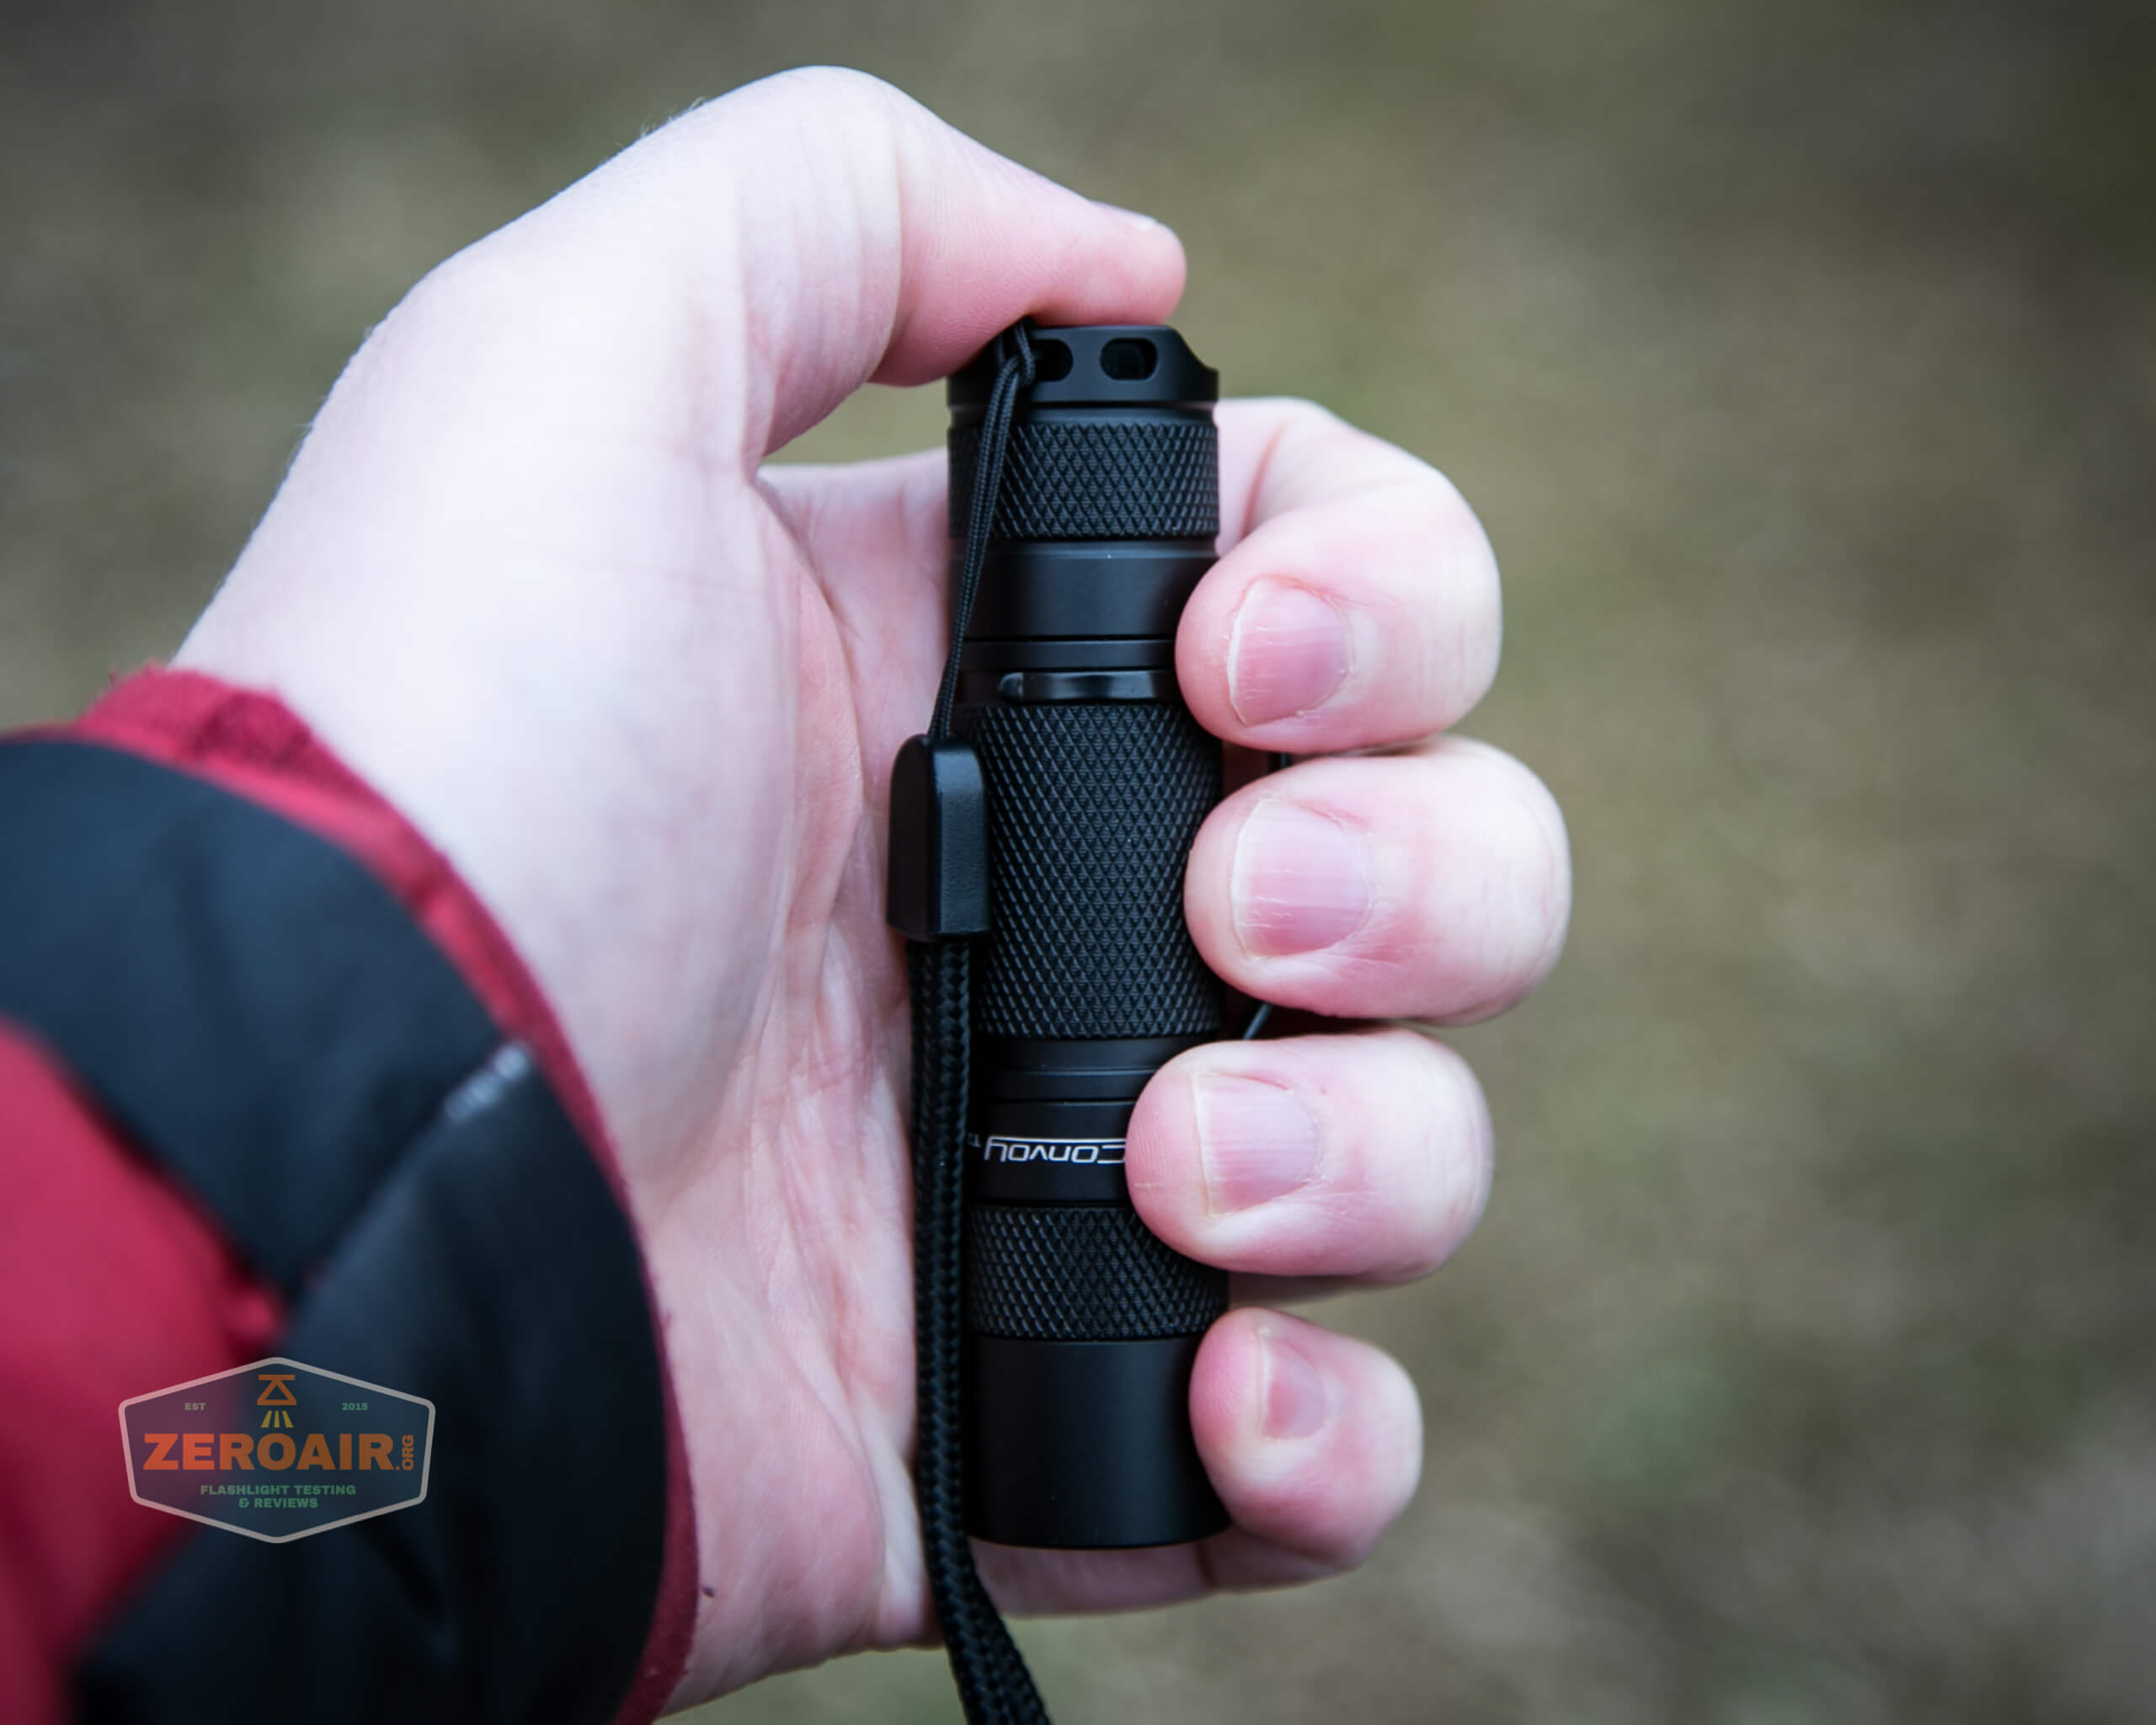 convoy t2 updated 14500/AA flashlight in hand